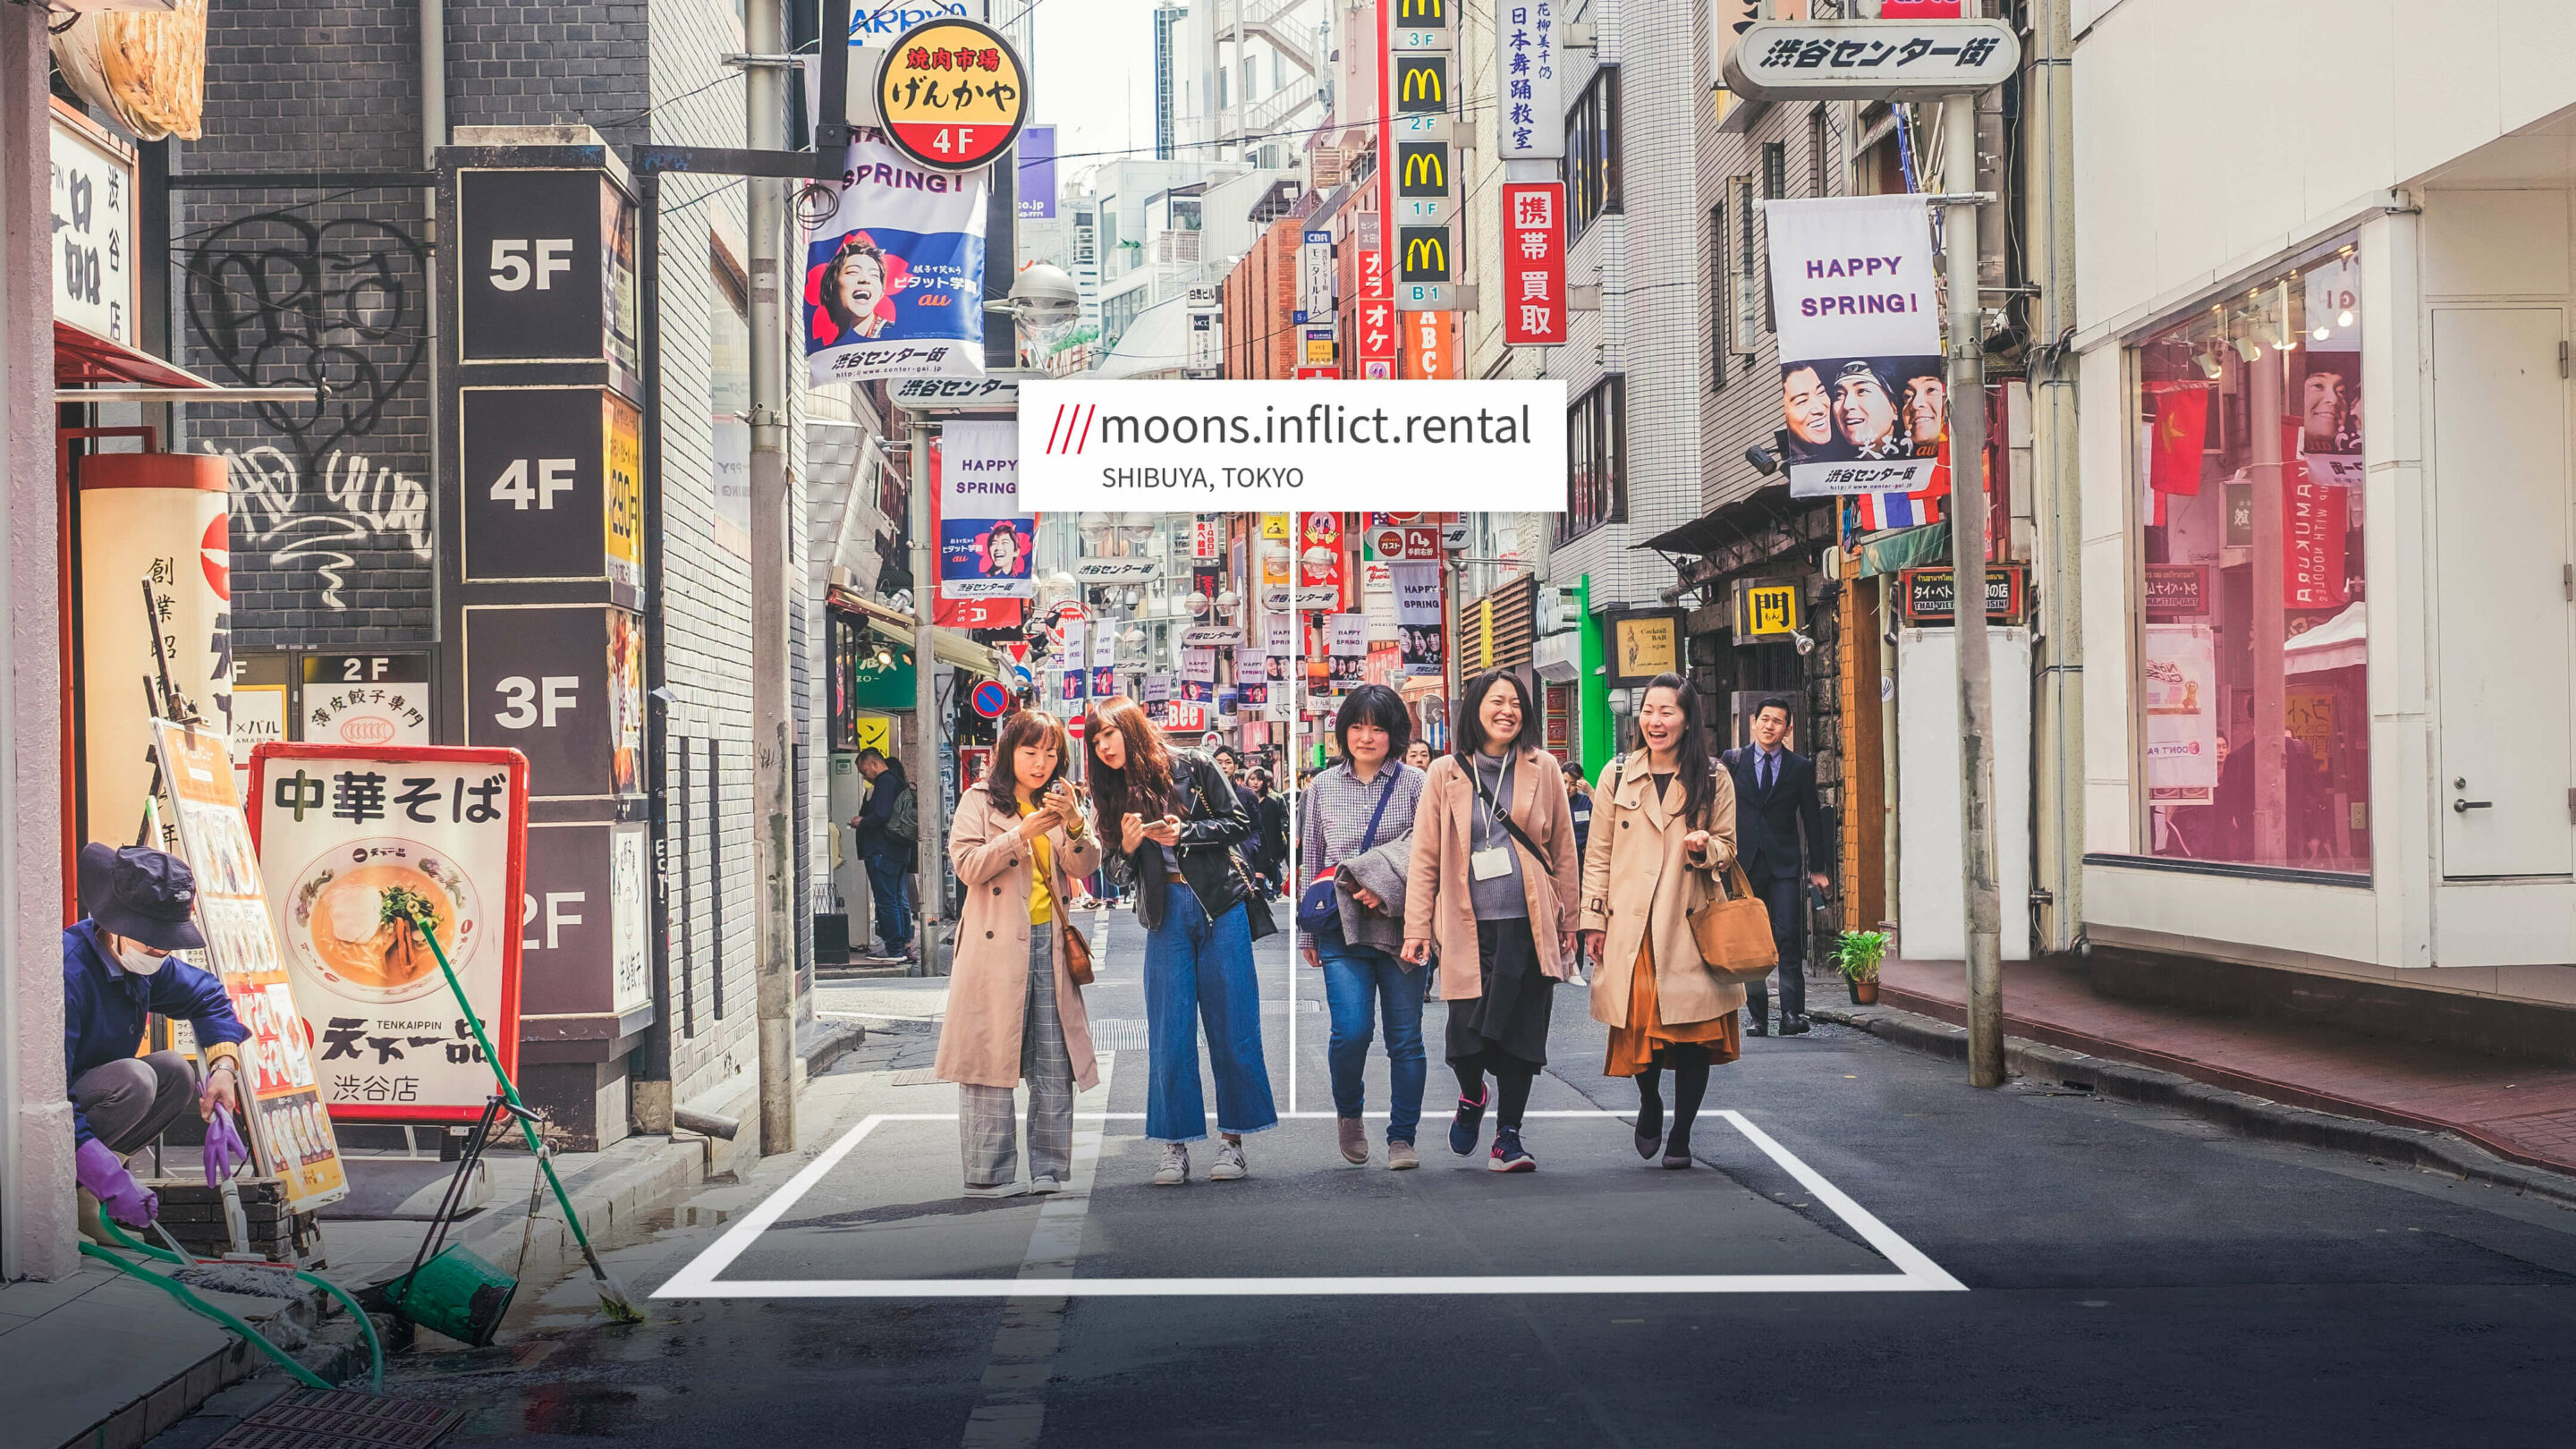 Tokyo street with what3words address